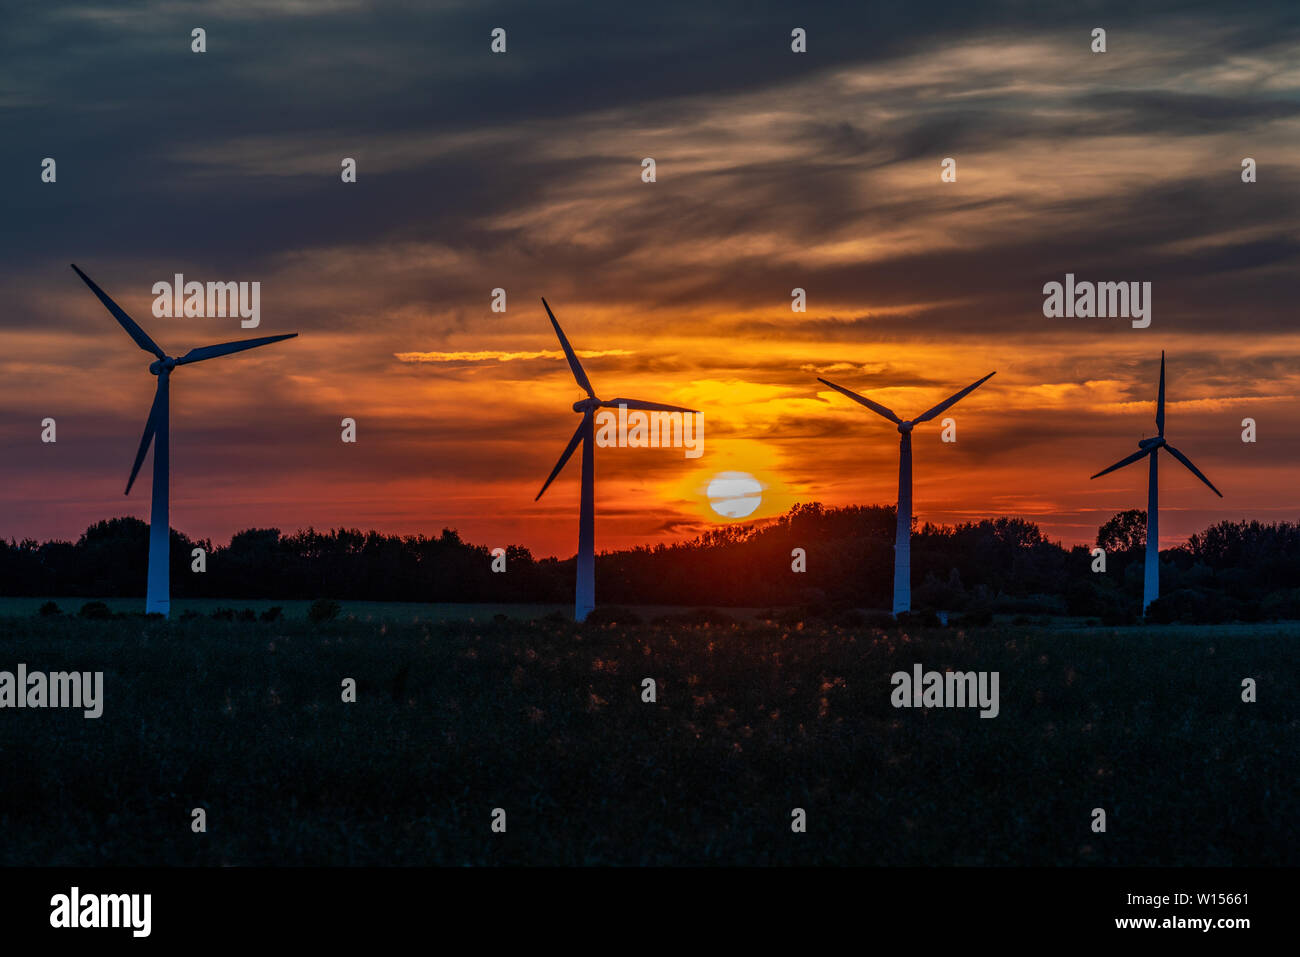 four wind turbines on a field against a golden sunset with a sky on fire in the background - Stock Image